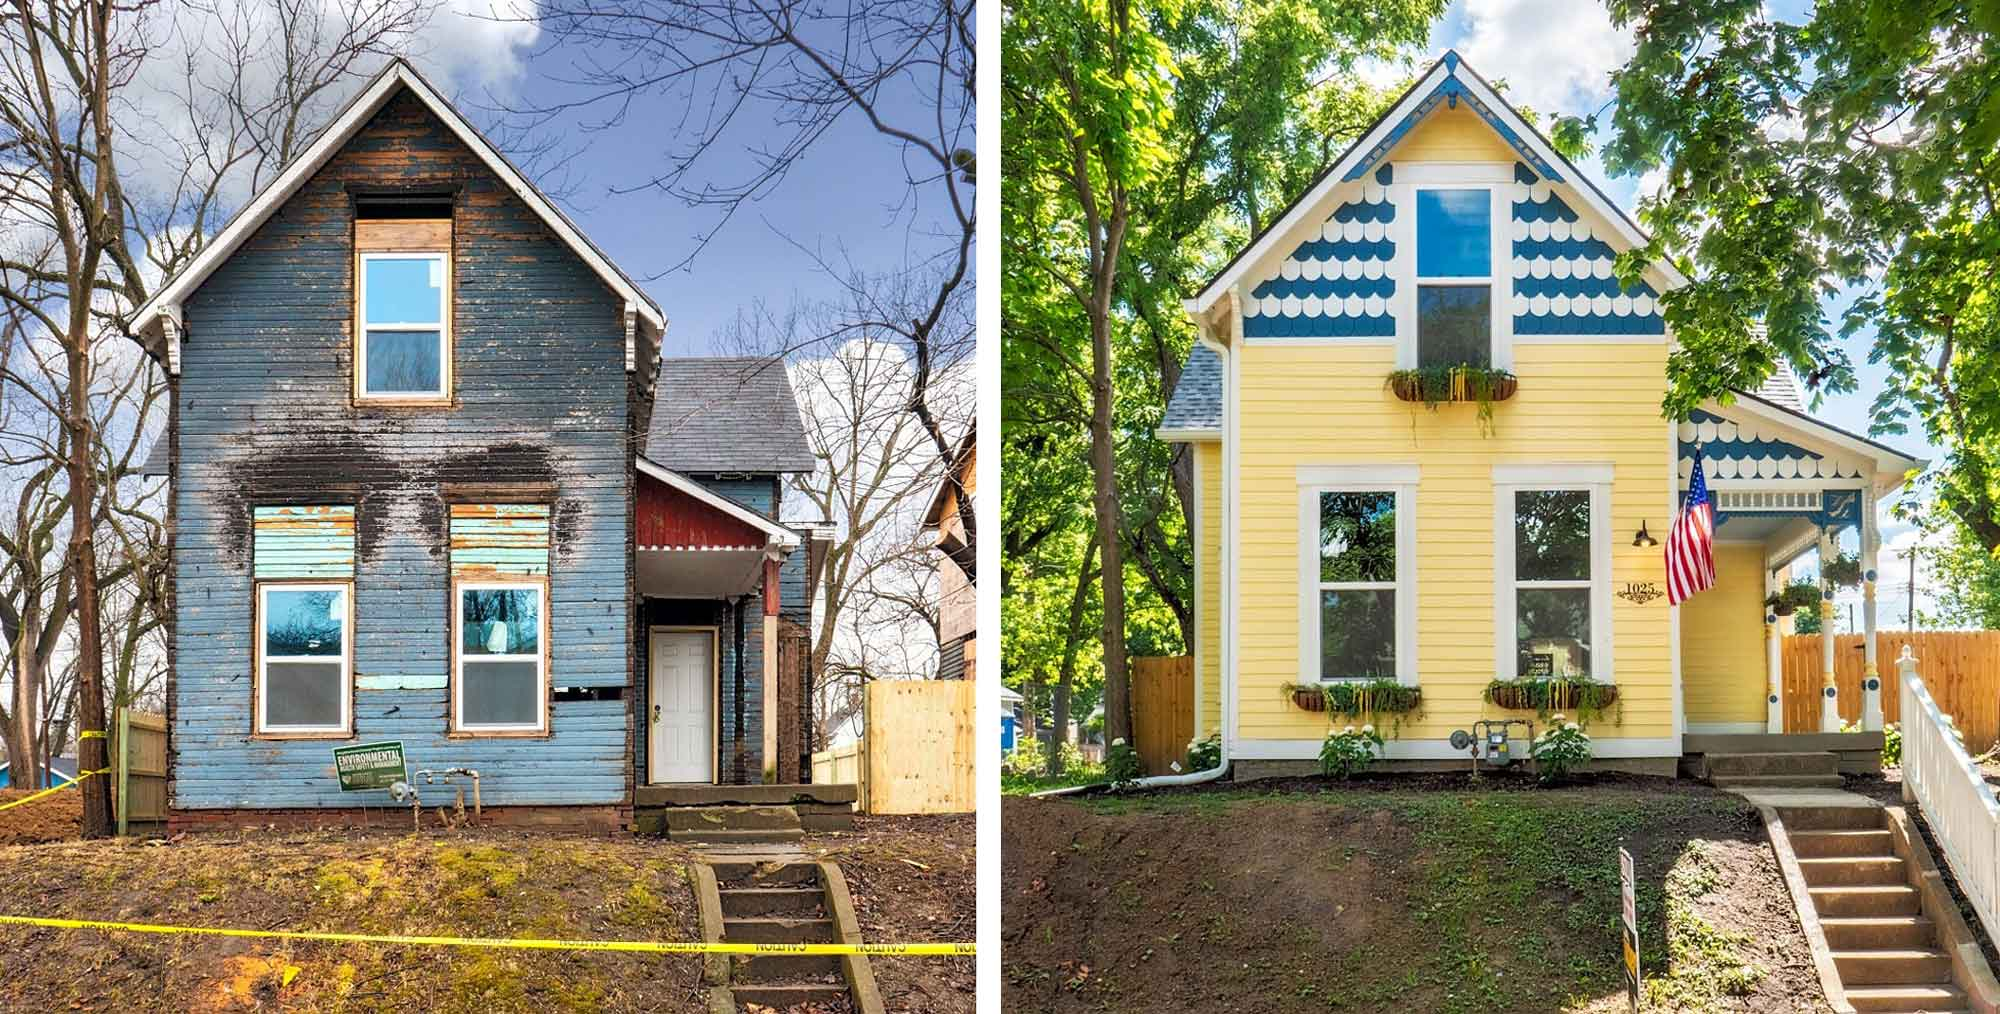 A Beginners Guide: 11 Essential Tips for Flipping Your First House